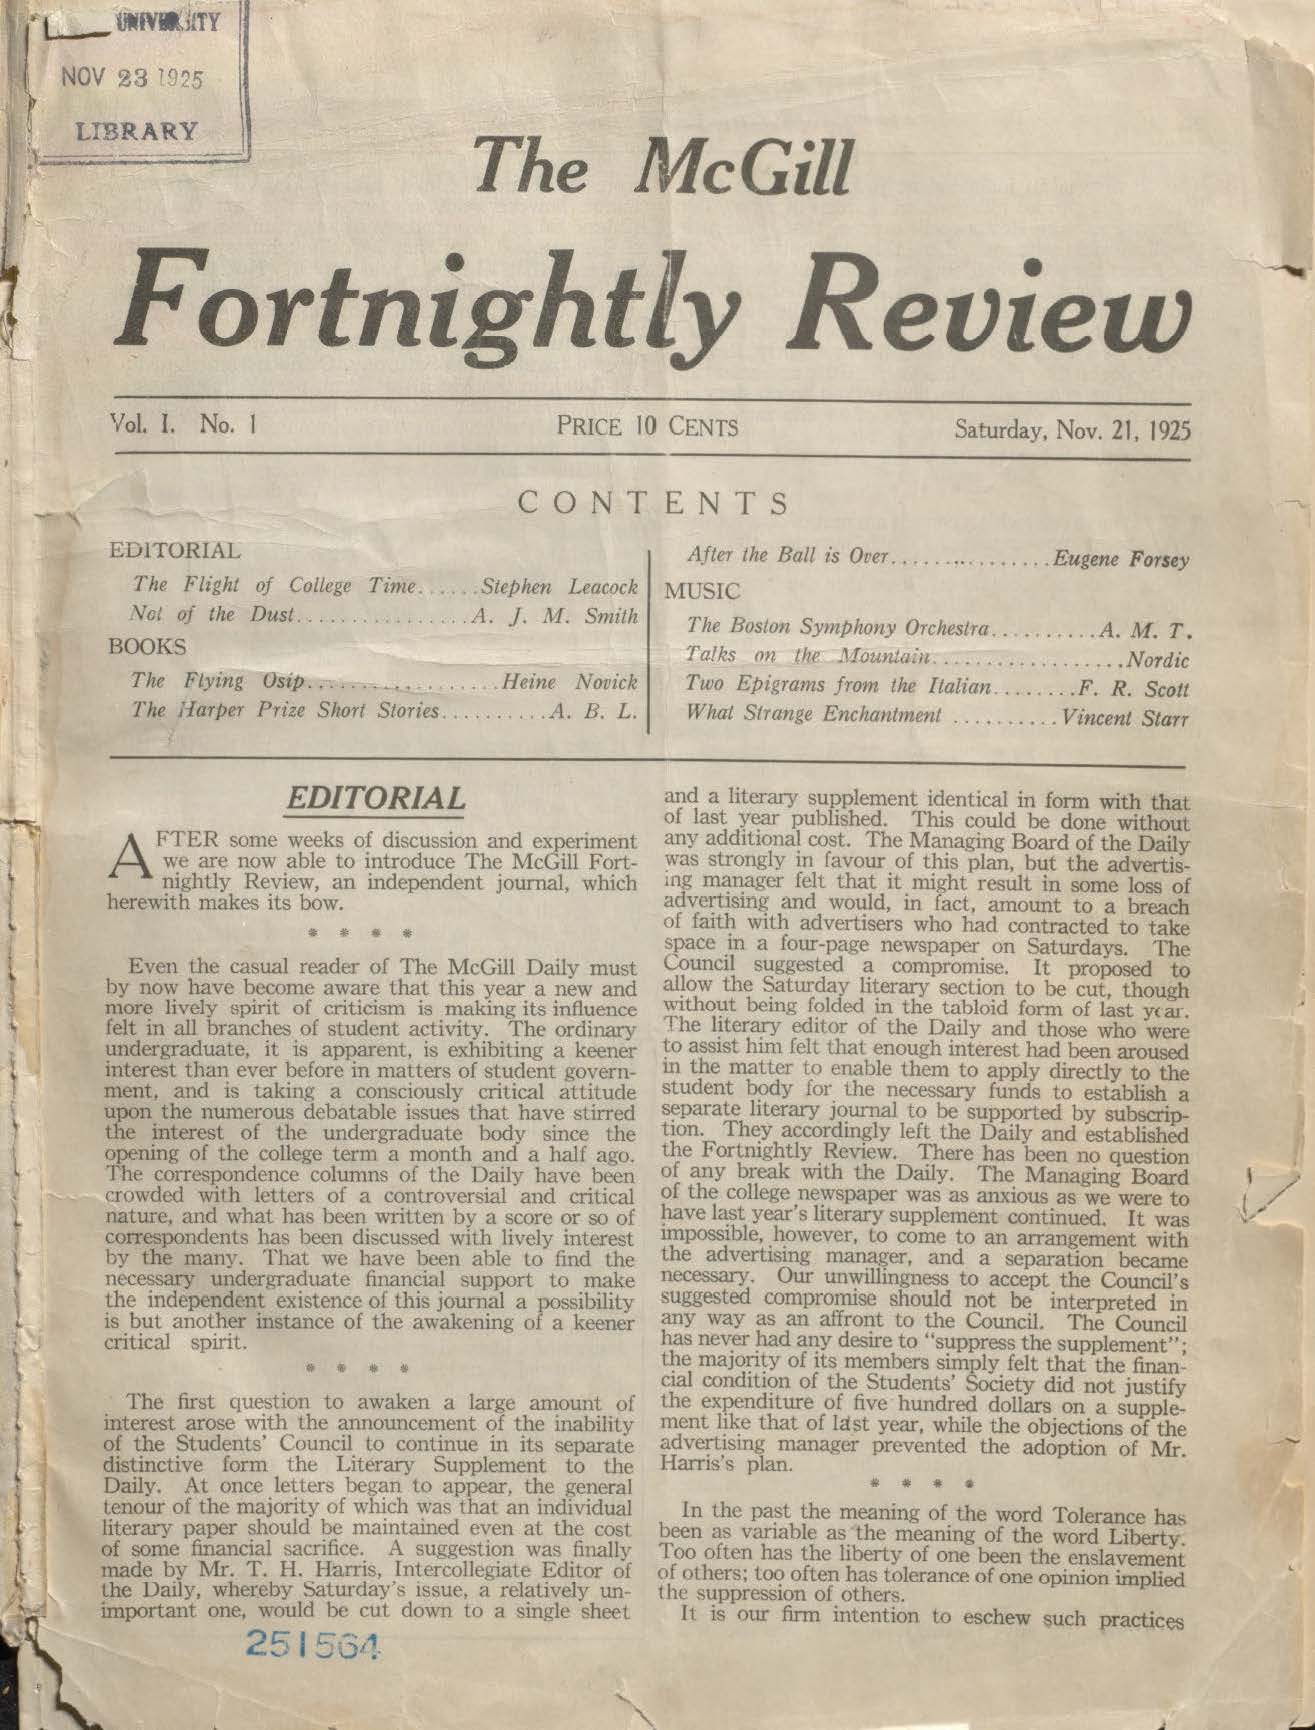 Front page of the The McGill Fortnightly Review first issue from 1925. http://mcgill.worldcat.org/oclc/428073817